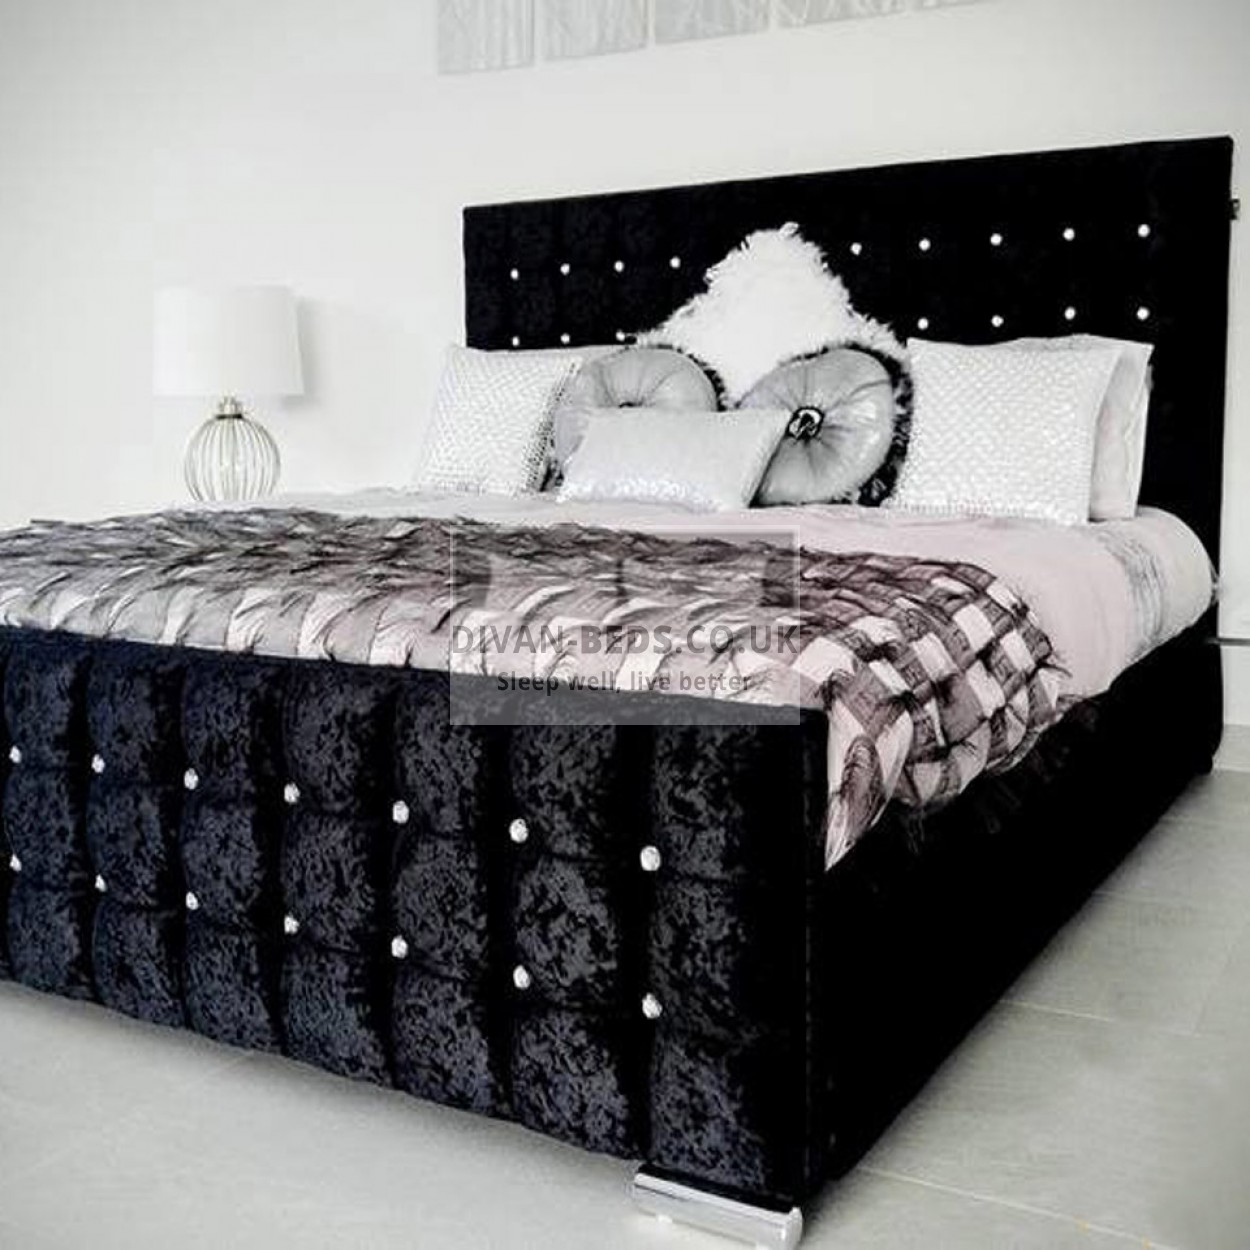 Valencia luxury crushed velvet upholstered bed frame for Bedroom ideas velvet bed